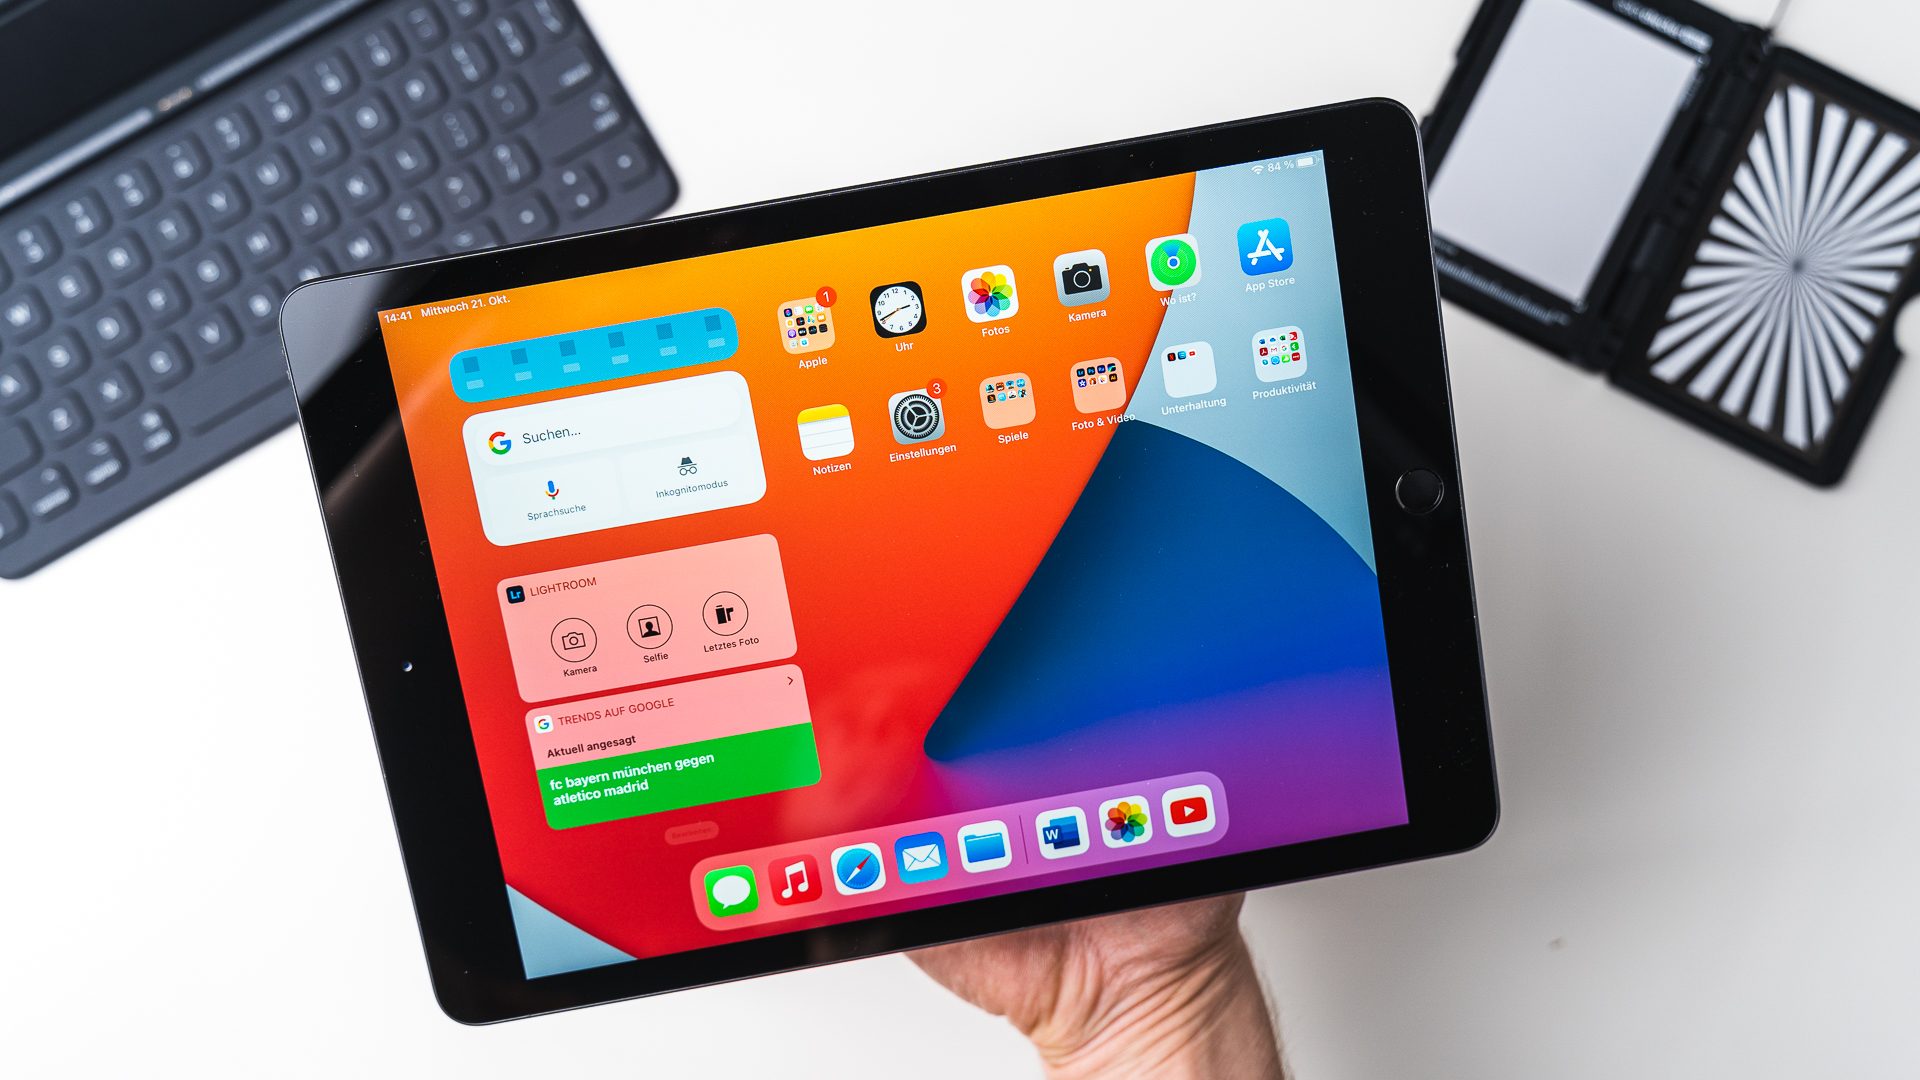 Apple iPad 8 Review: Outstanding Performance & Value • MyNextTablet